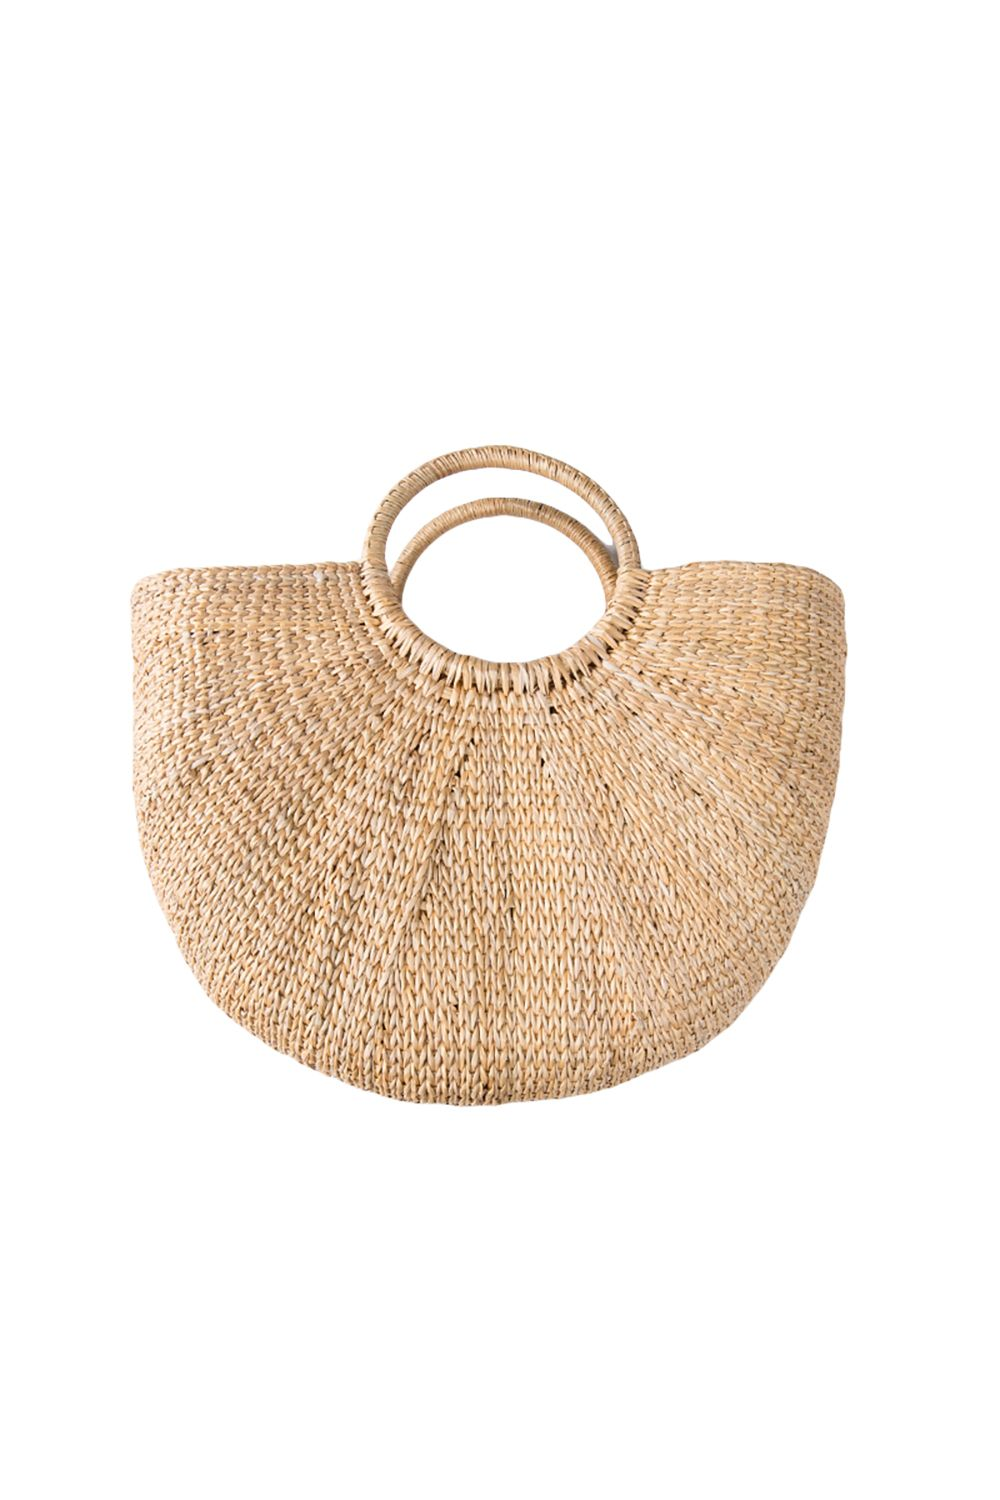 "<p>Why did I open this story with a summery bag? Am I nuts? So what if I am? Why am I talking to myself when I should be saying that <a href=""http://www.marieclaire.com/fashion/news/a23945/seasonally-inappropriate-bag-trend/"" target=""_blank"" data-tracking-id=""recirc-text-link"">seasonal anachronism is a styling trick you should be using</a> with your accessories? </p><p><em data-redactor-tag=""em"" data-verified=""redactor"">Front Row Shop, $46</em></p><p><strong data-redactor-tag=""strong"" data-verified=""redactor"">BUY IT: </strong><span class=""redactor-invisible-space"" data-verified=""redactor"" data-redactor-tag=""span"" data-redactor-class=""redactor-invisible-space""><strong data-redactor-tag=""strong"" data-verified=""redactor""><a href=""http://www.frontrowshop.com/product/frs-braided-tote"" target=""_blank"" data-tracking-id=""recirc-text-link"">frontrowshop.com</a>.</strong></span></p>"